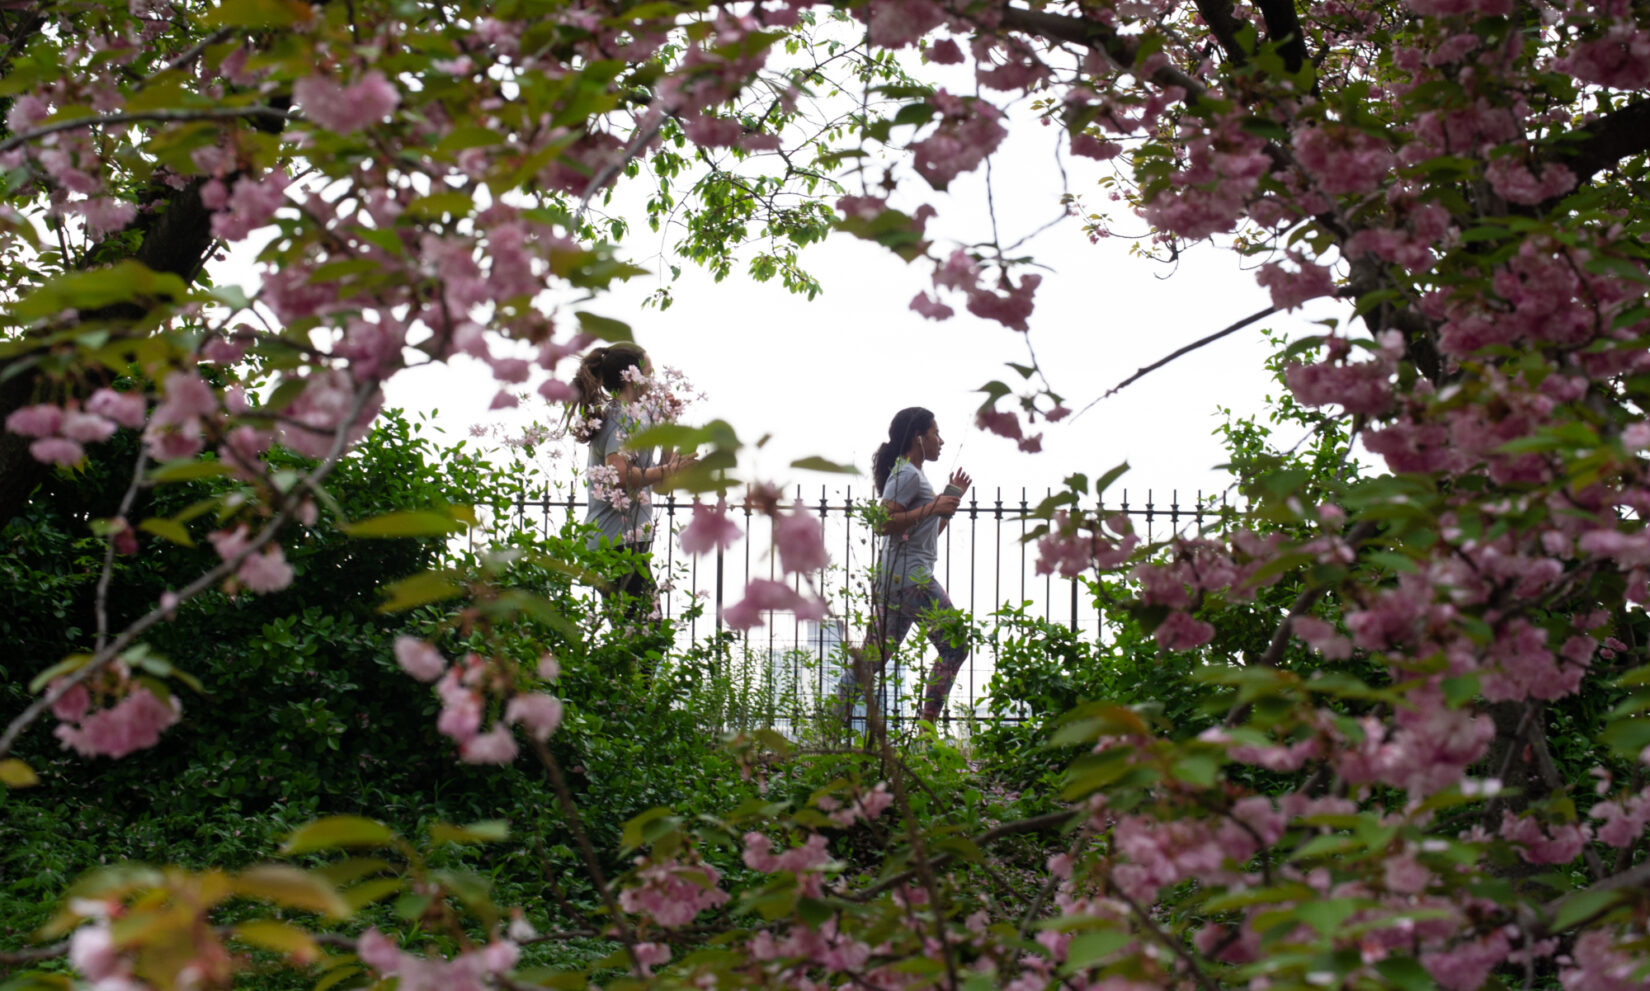 Two runners seen through a bough of blossoms at the Reservoir